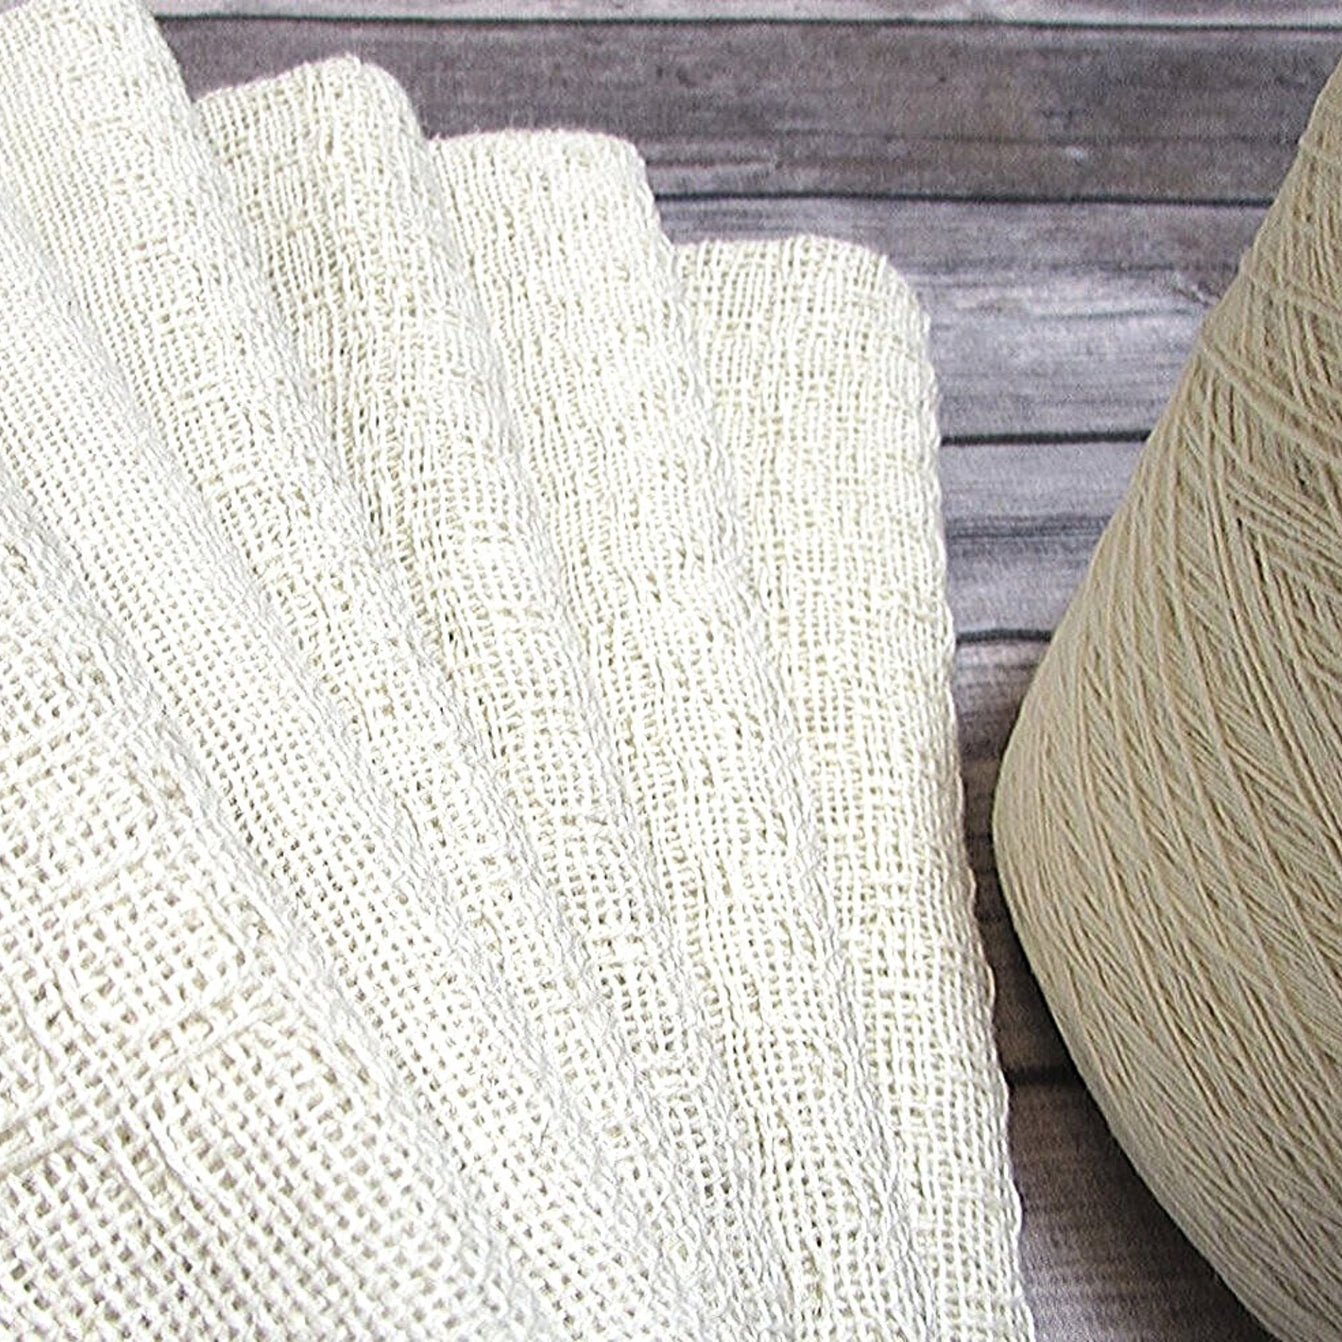 Handwoven Dish Towel Kit